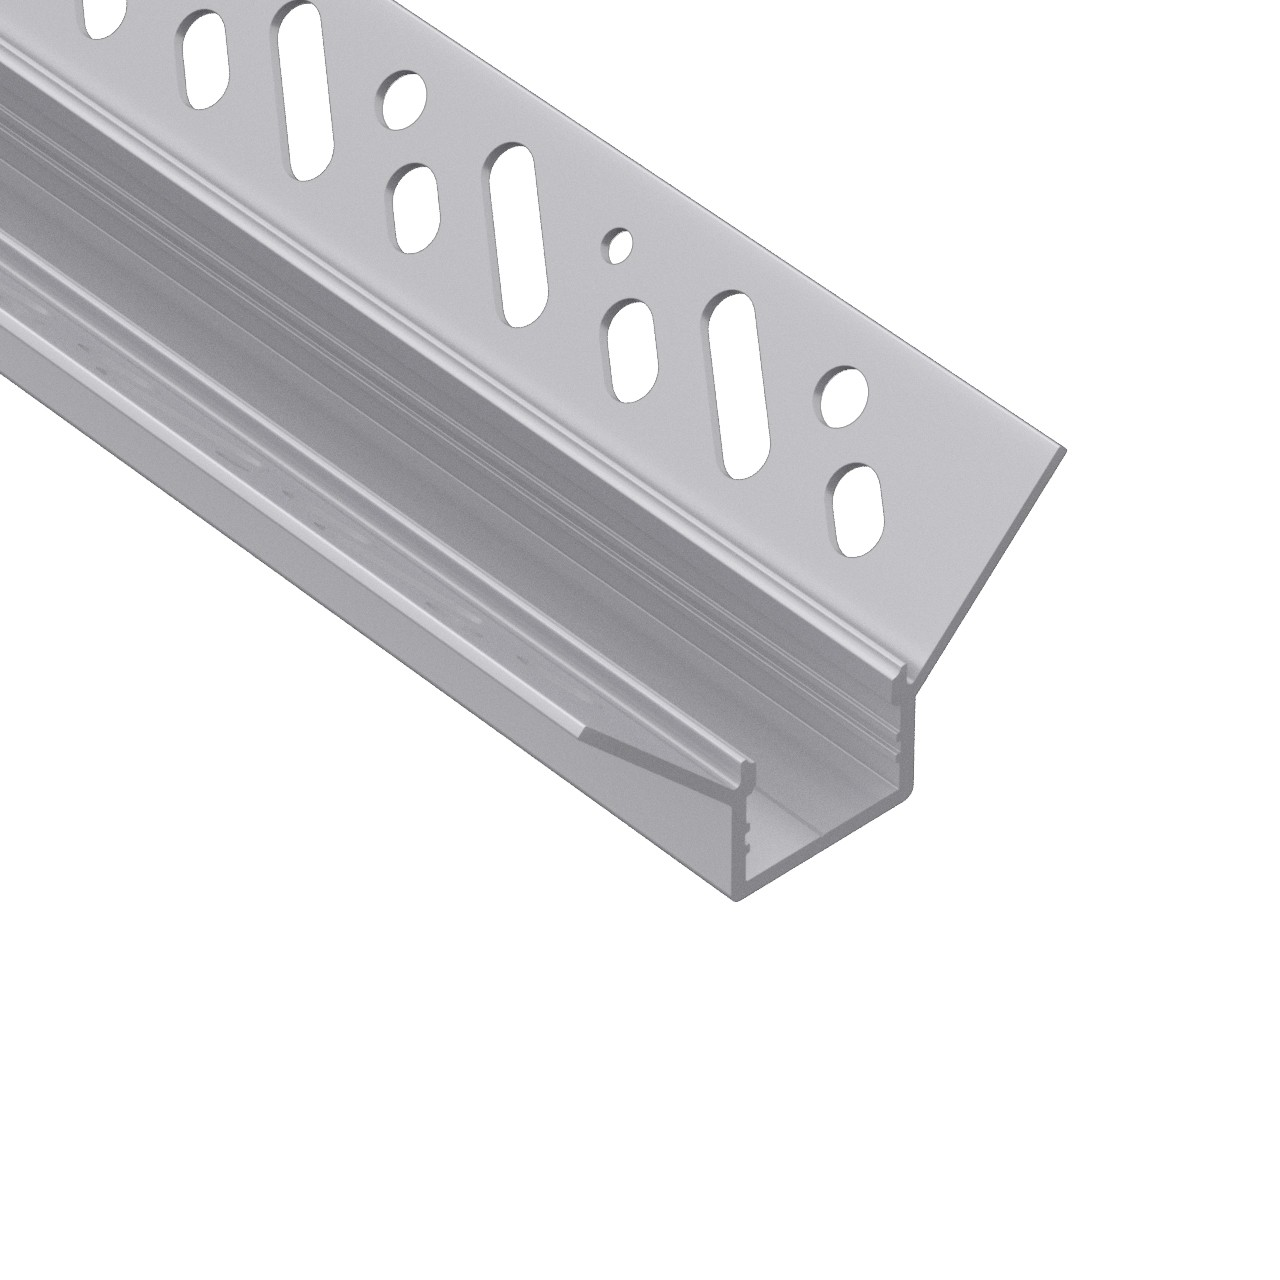 CT6 Trimless Aluminium Extrusions for recessing into plasterboard inside corner 49.8x26.2mm